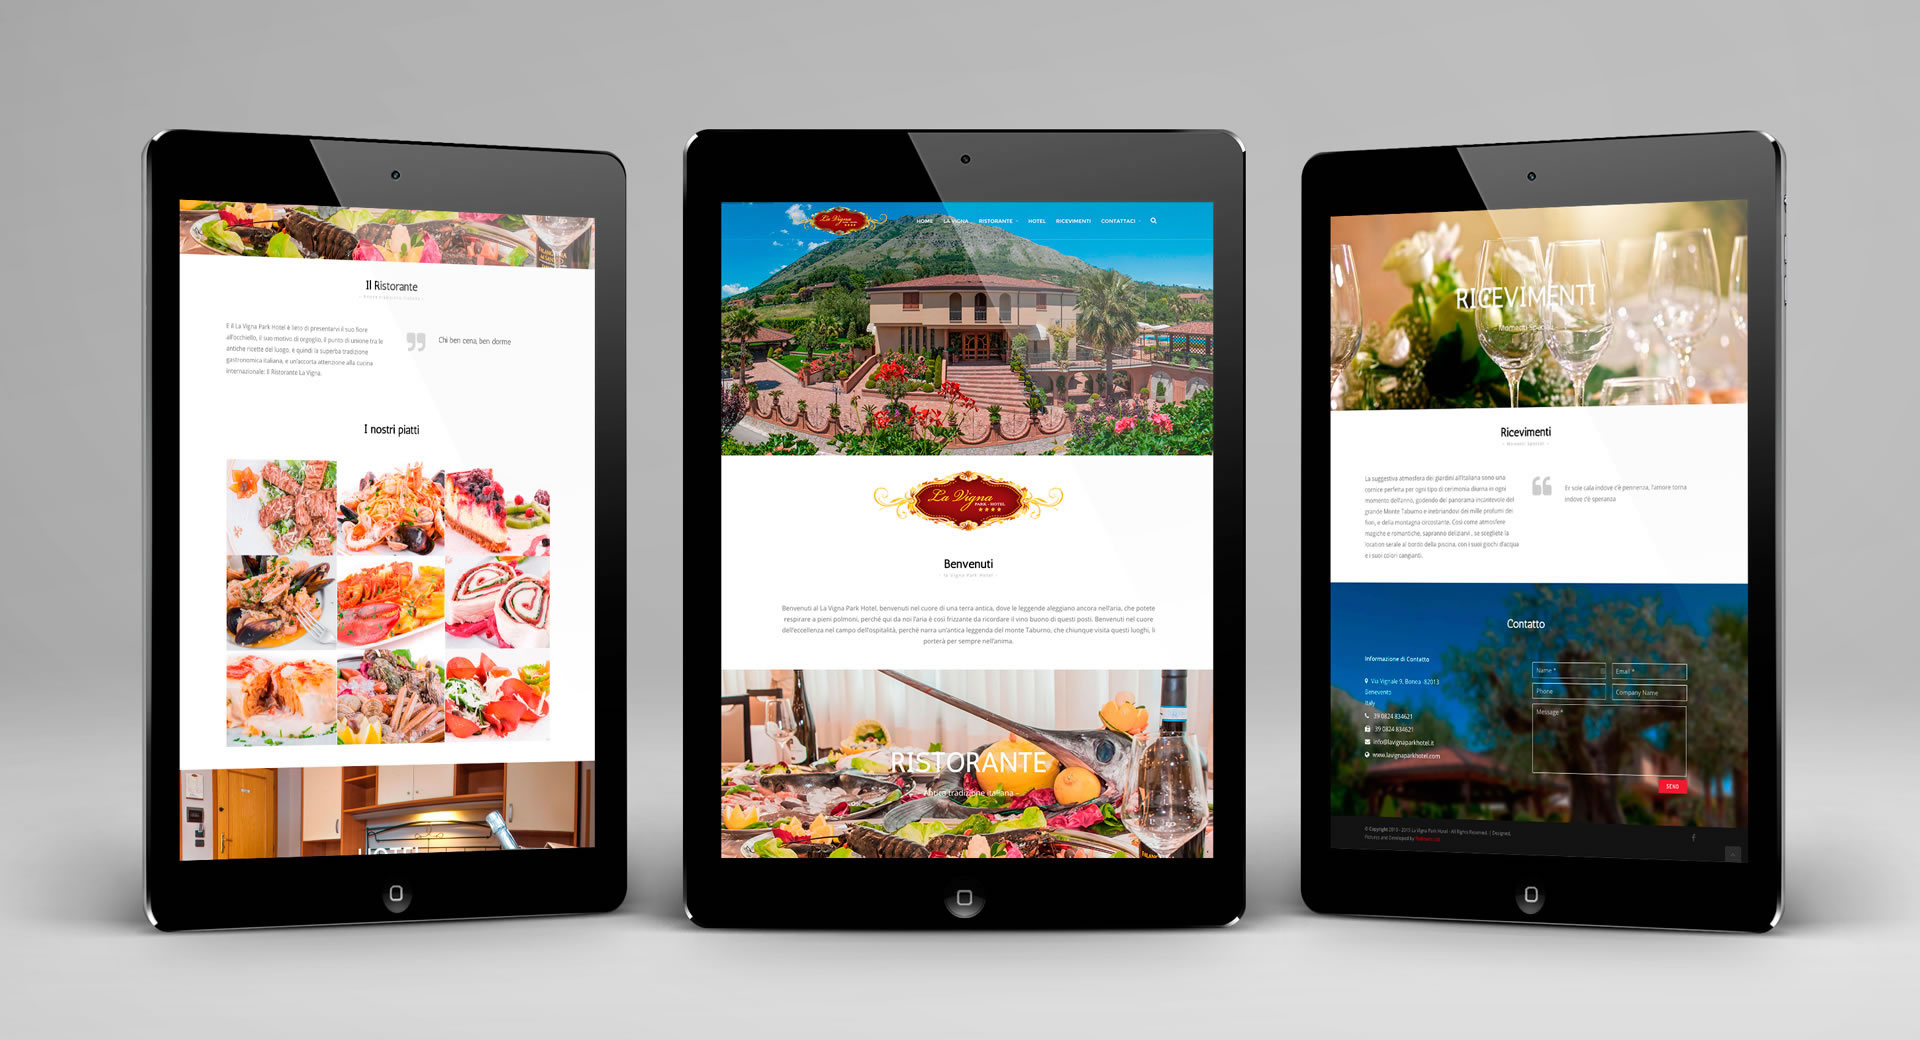 rjr design studio graphic designer hotel web london